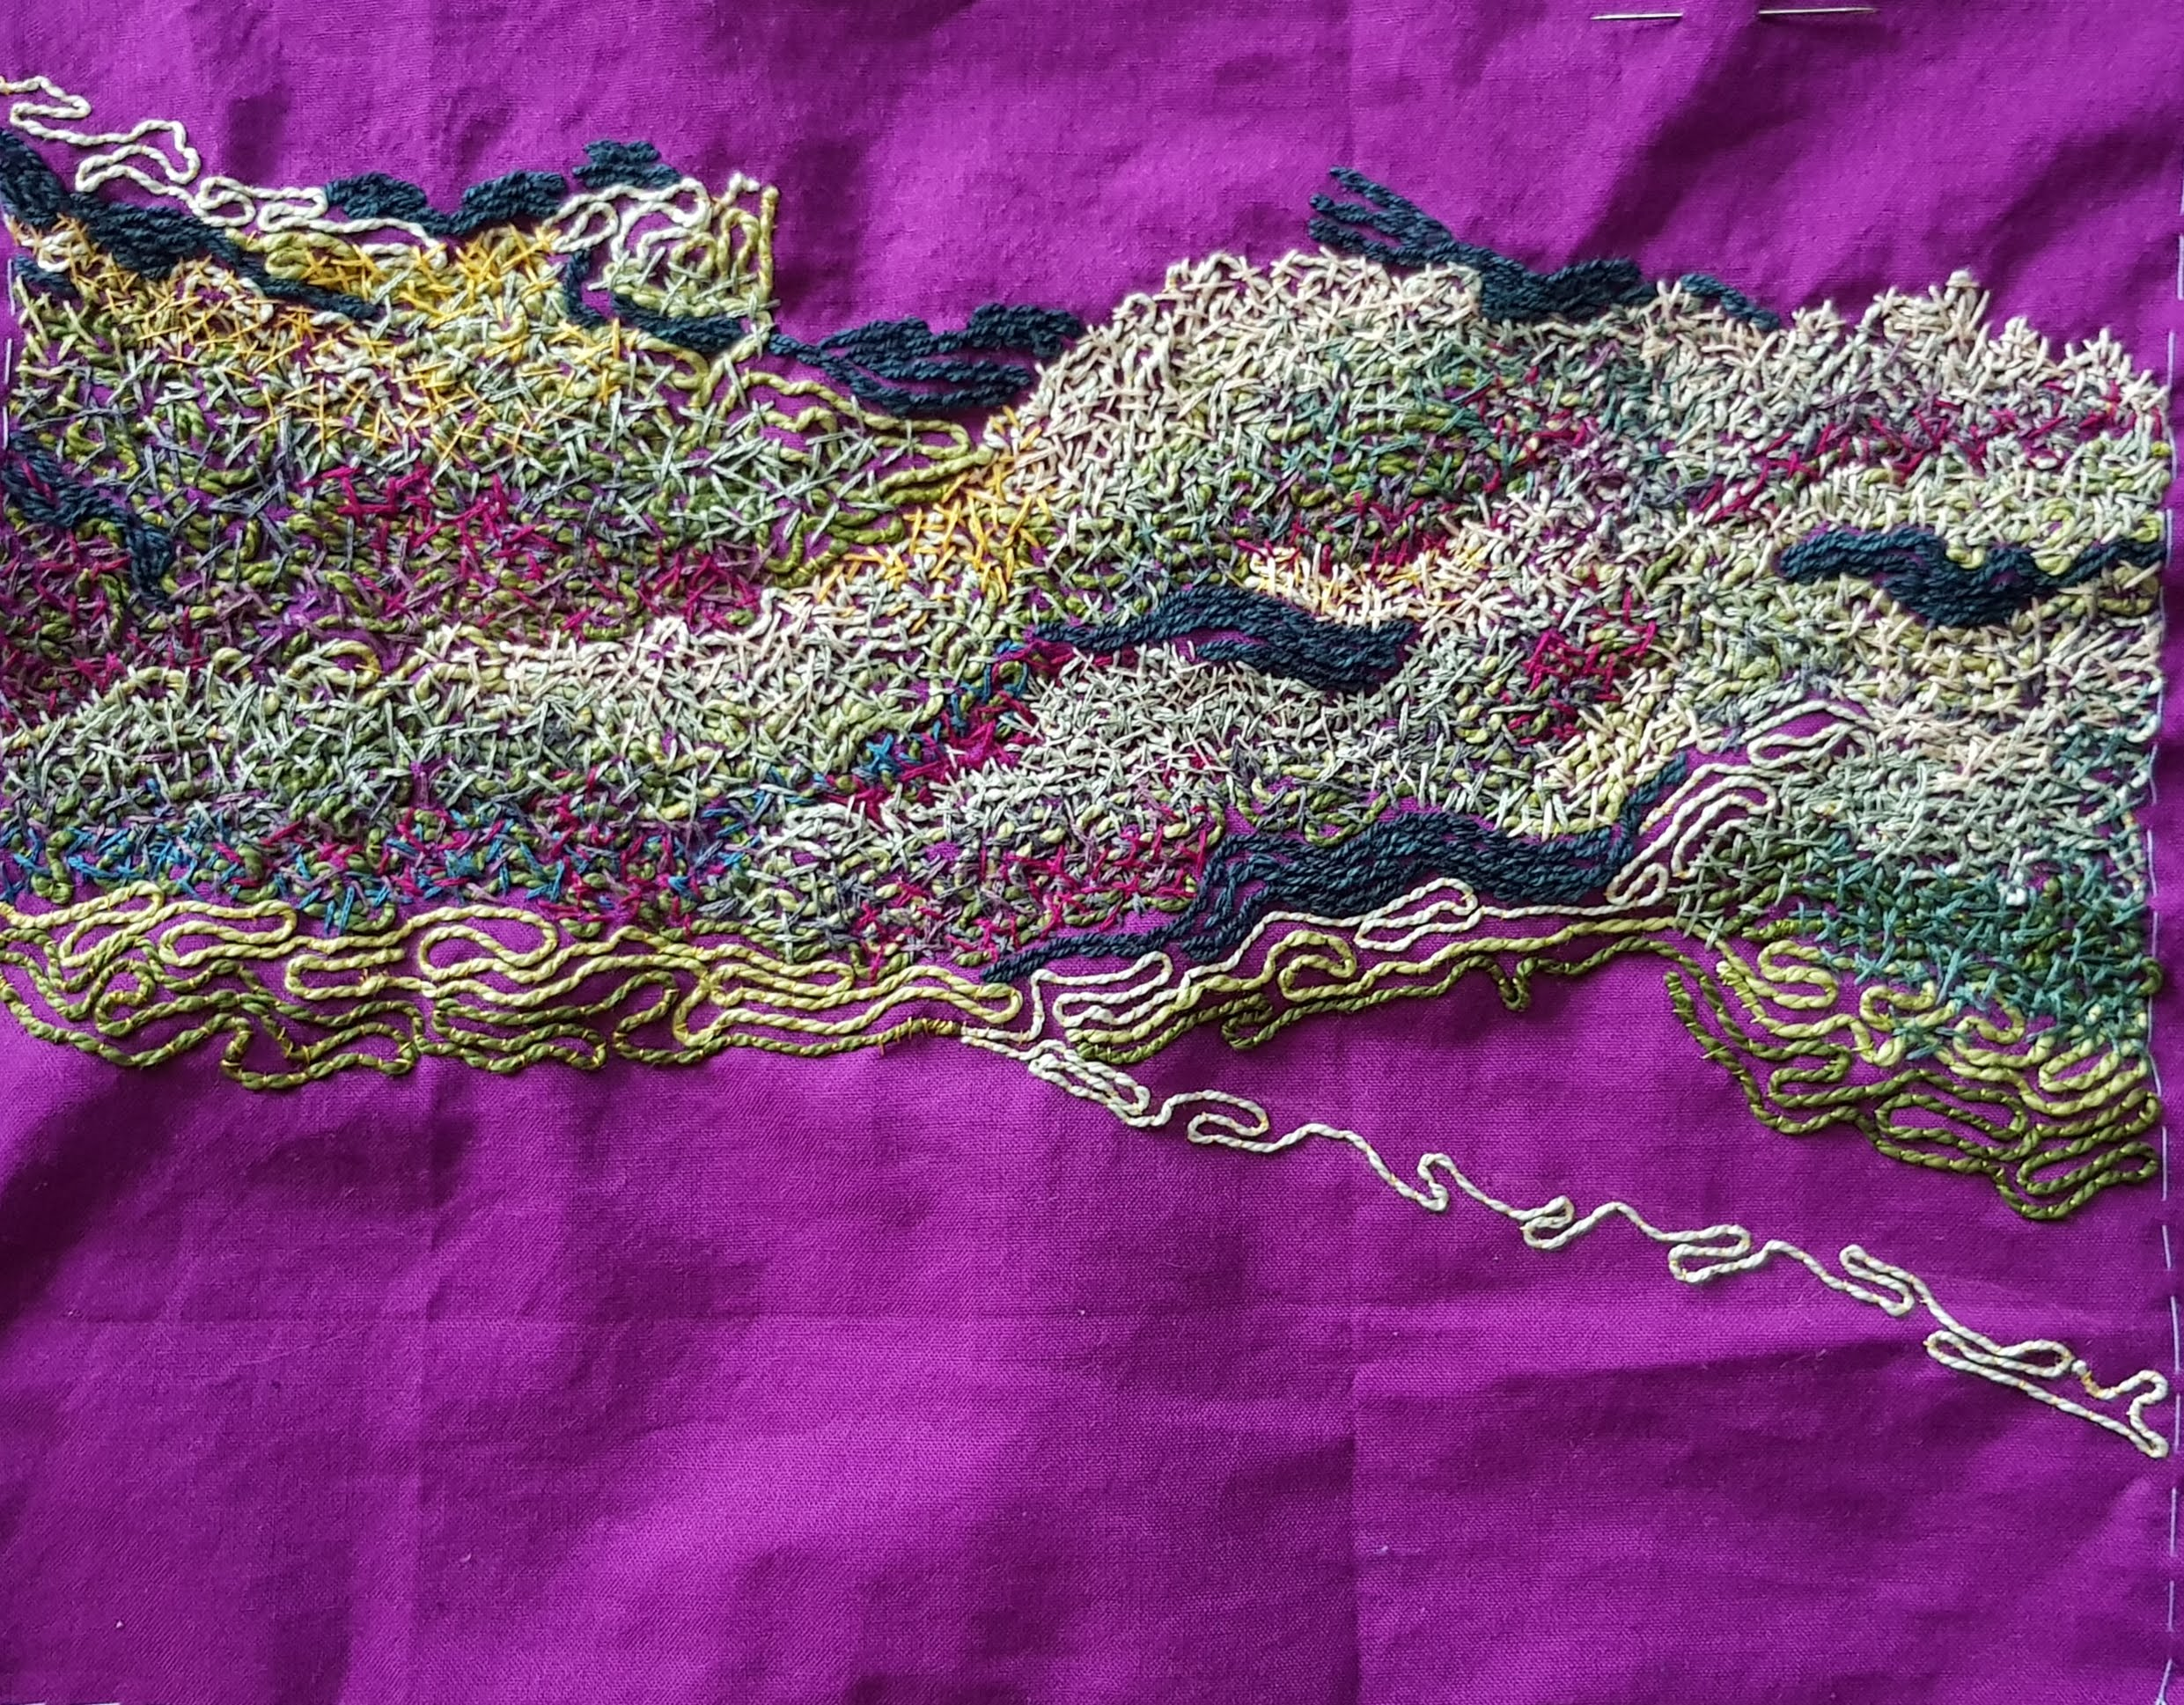 Contemporary embroidery